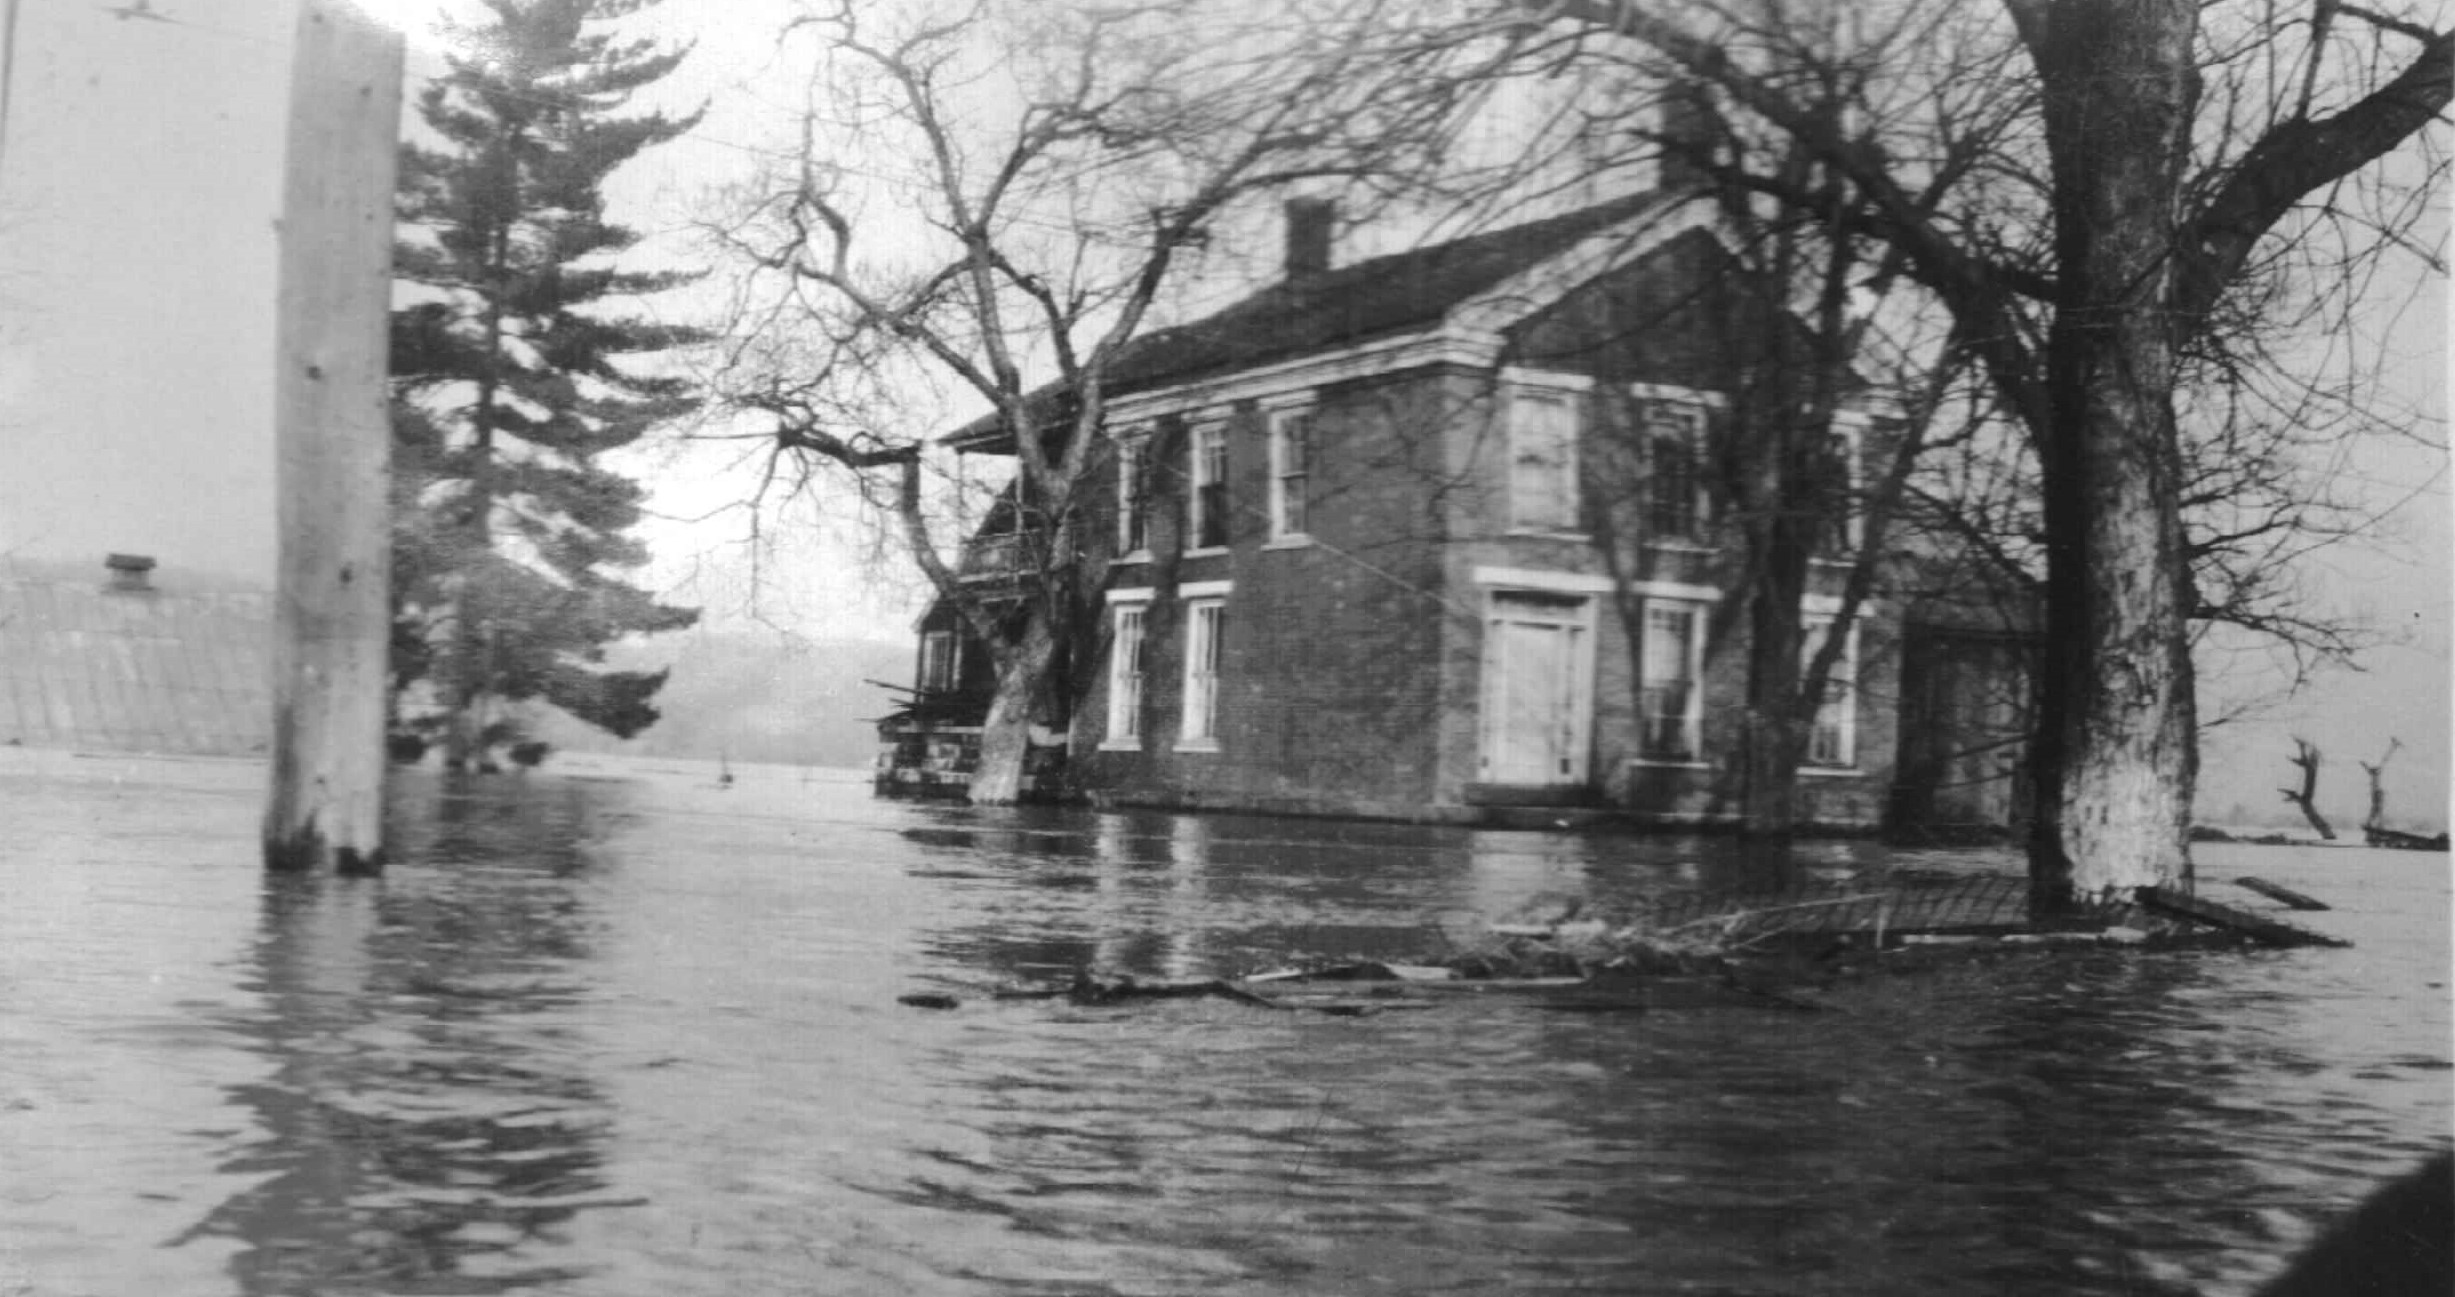 The Ramsdell House during the flood of 1937.